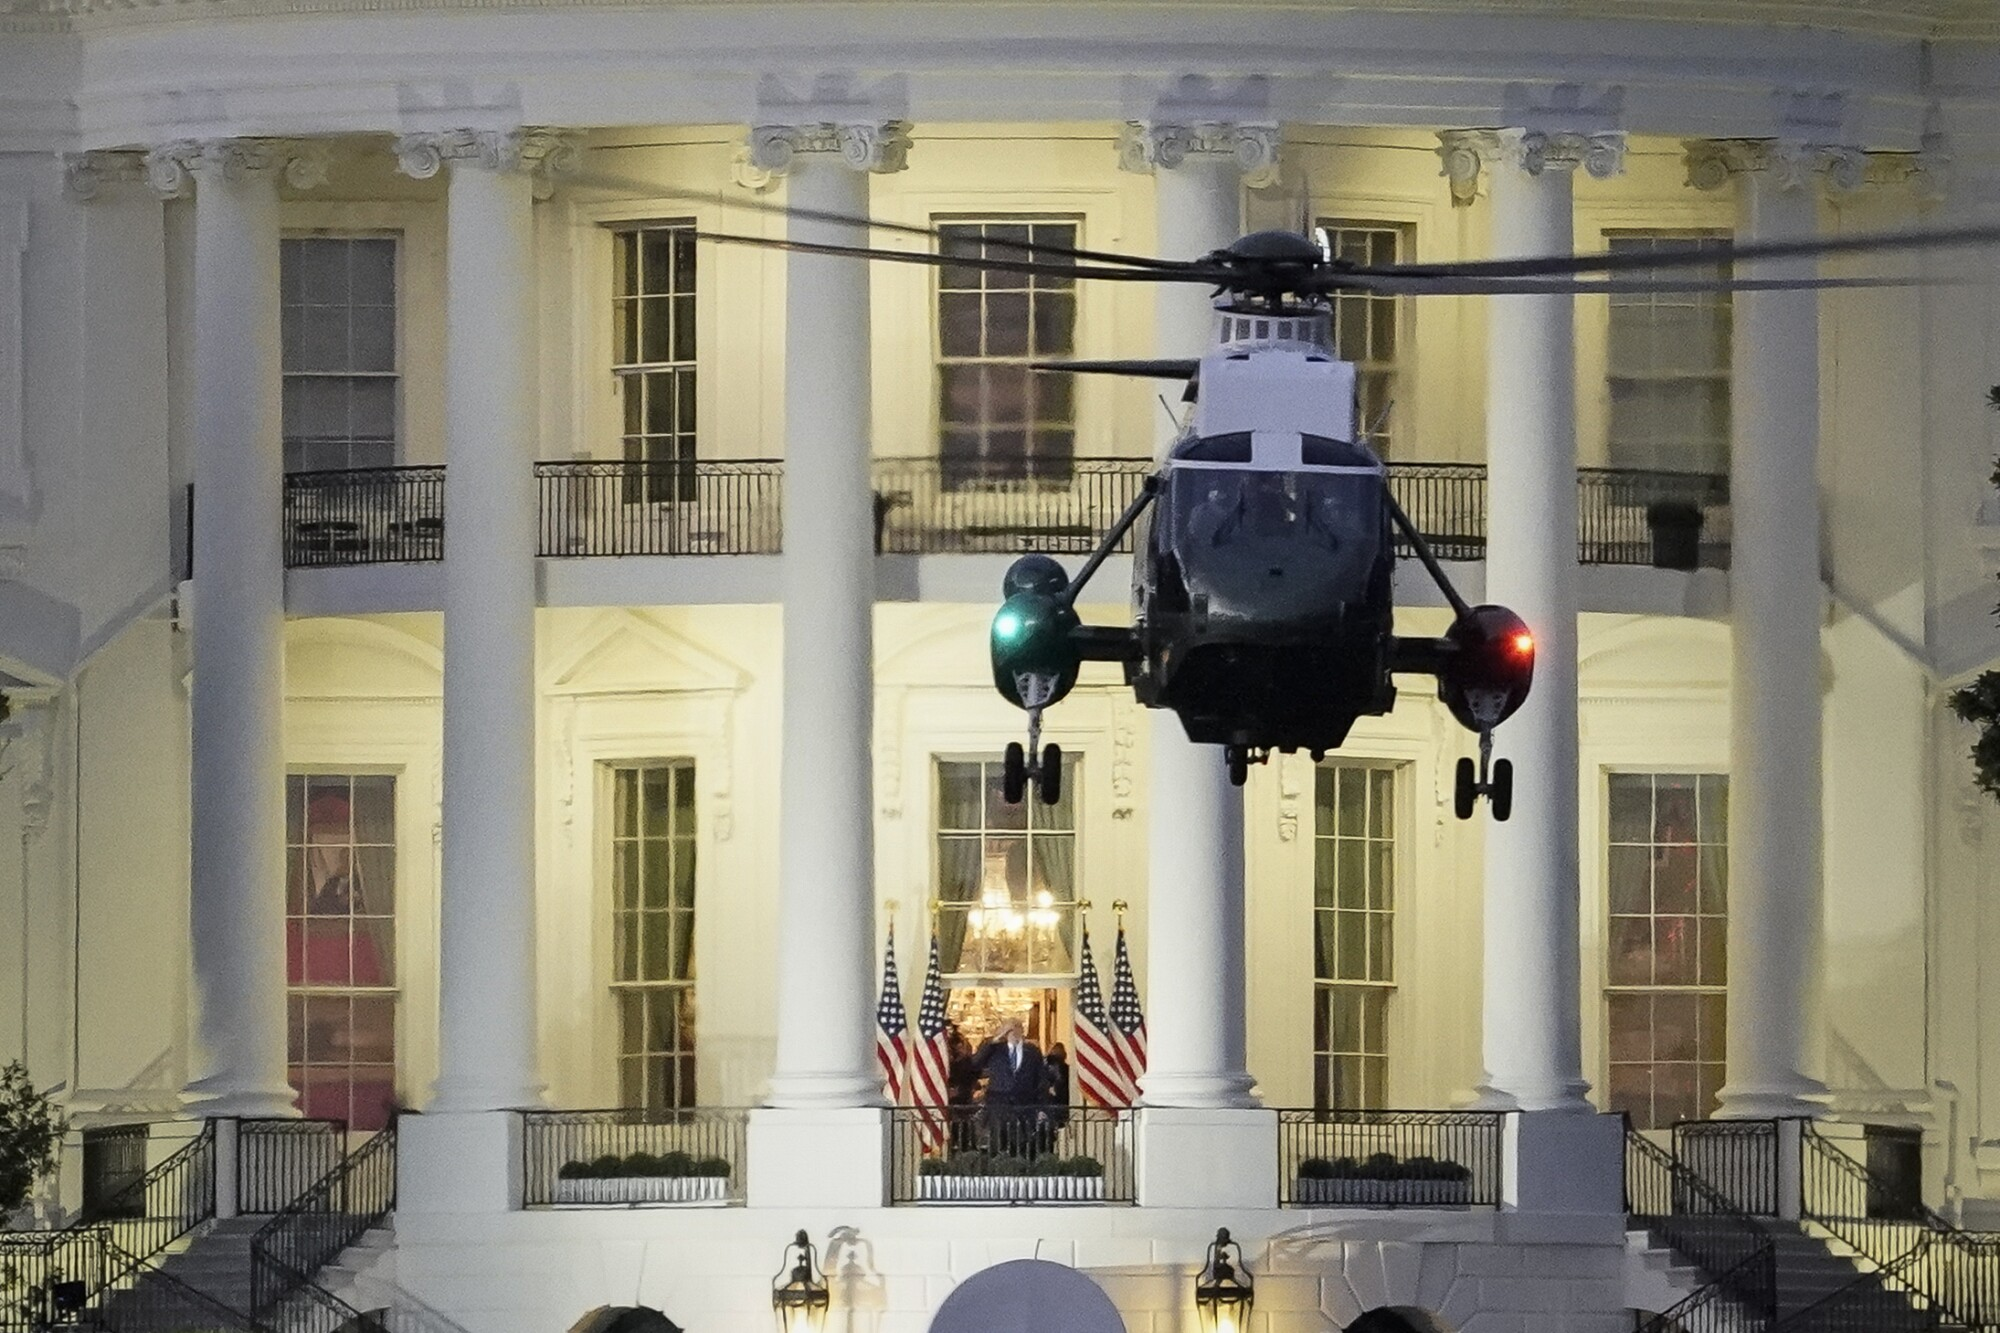 President Trump stands on the Blue Room balcony as Marine One lifts off from the White House.